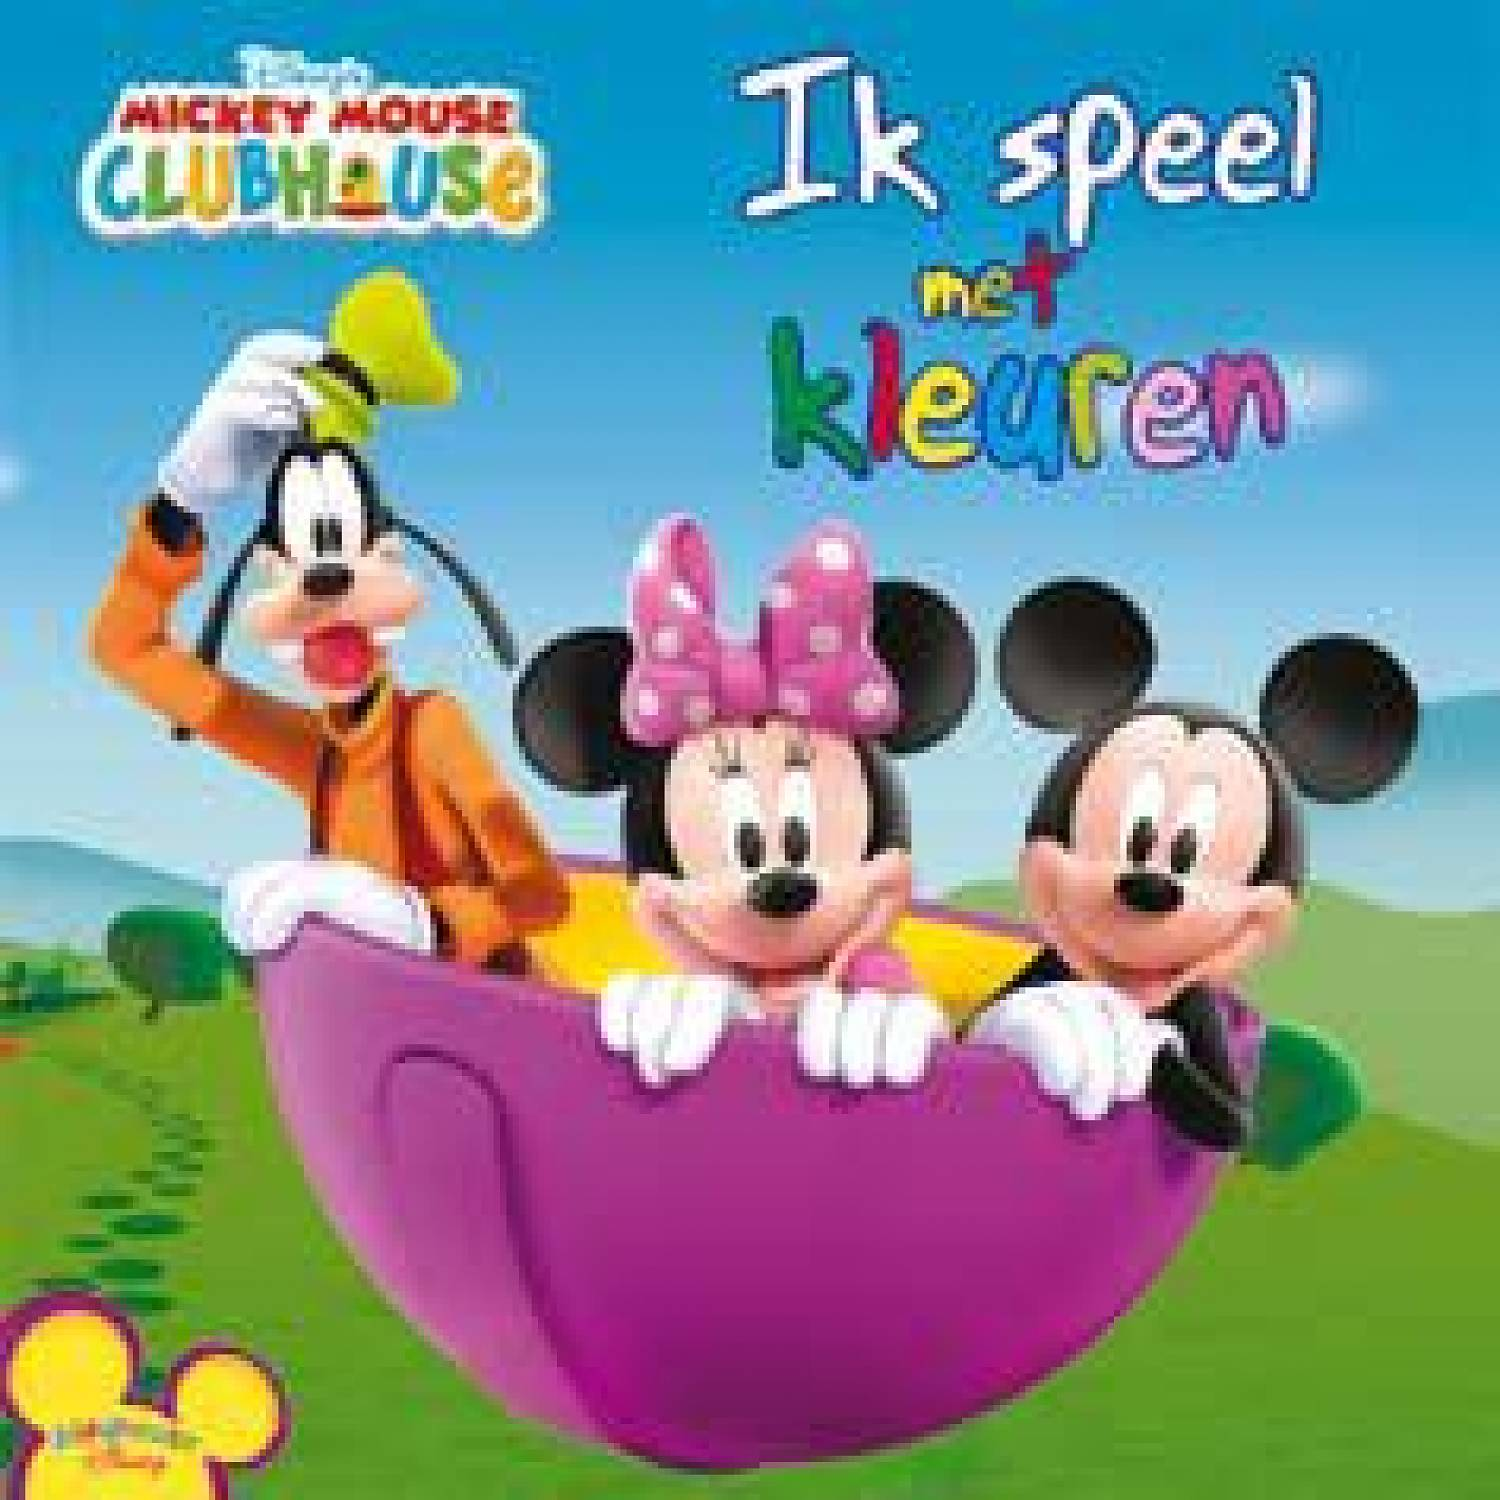 download mickey mouse clubhouse 577808 hd wallpaper backgrounds download download mickey mouse clubhouse